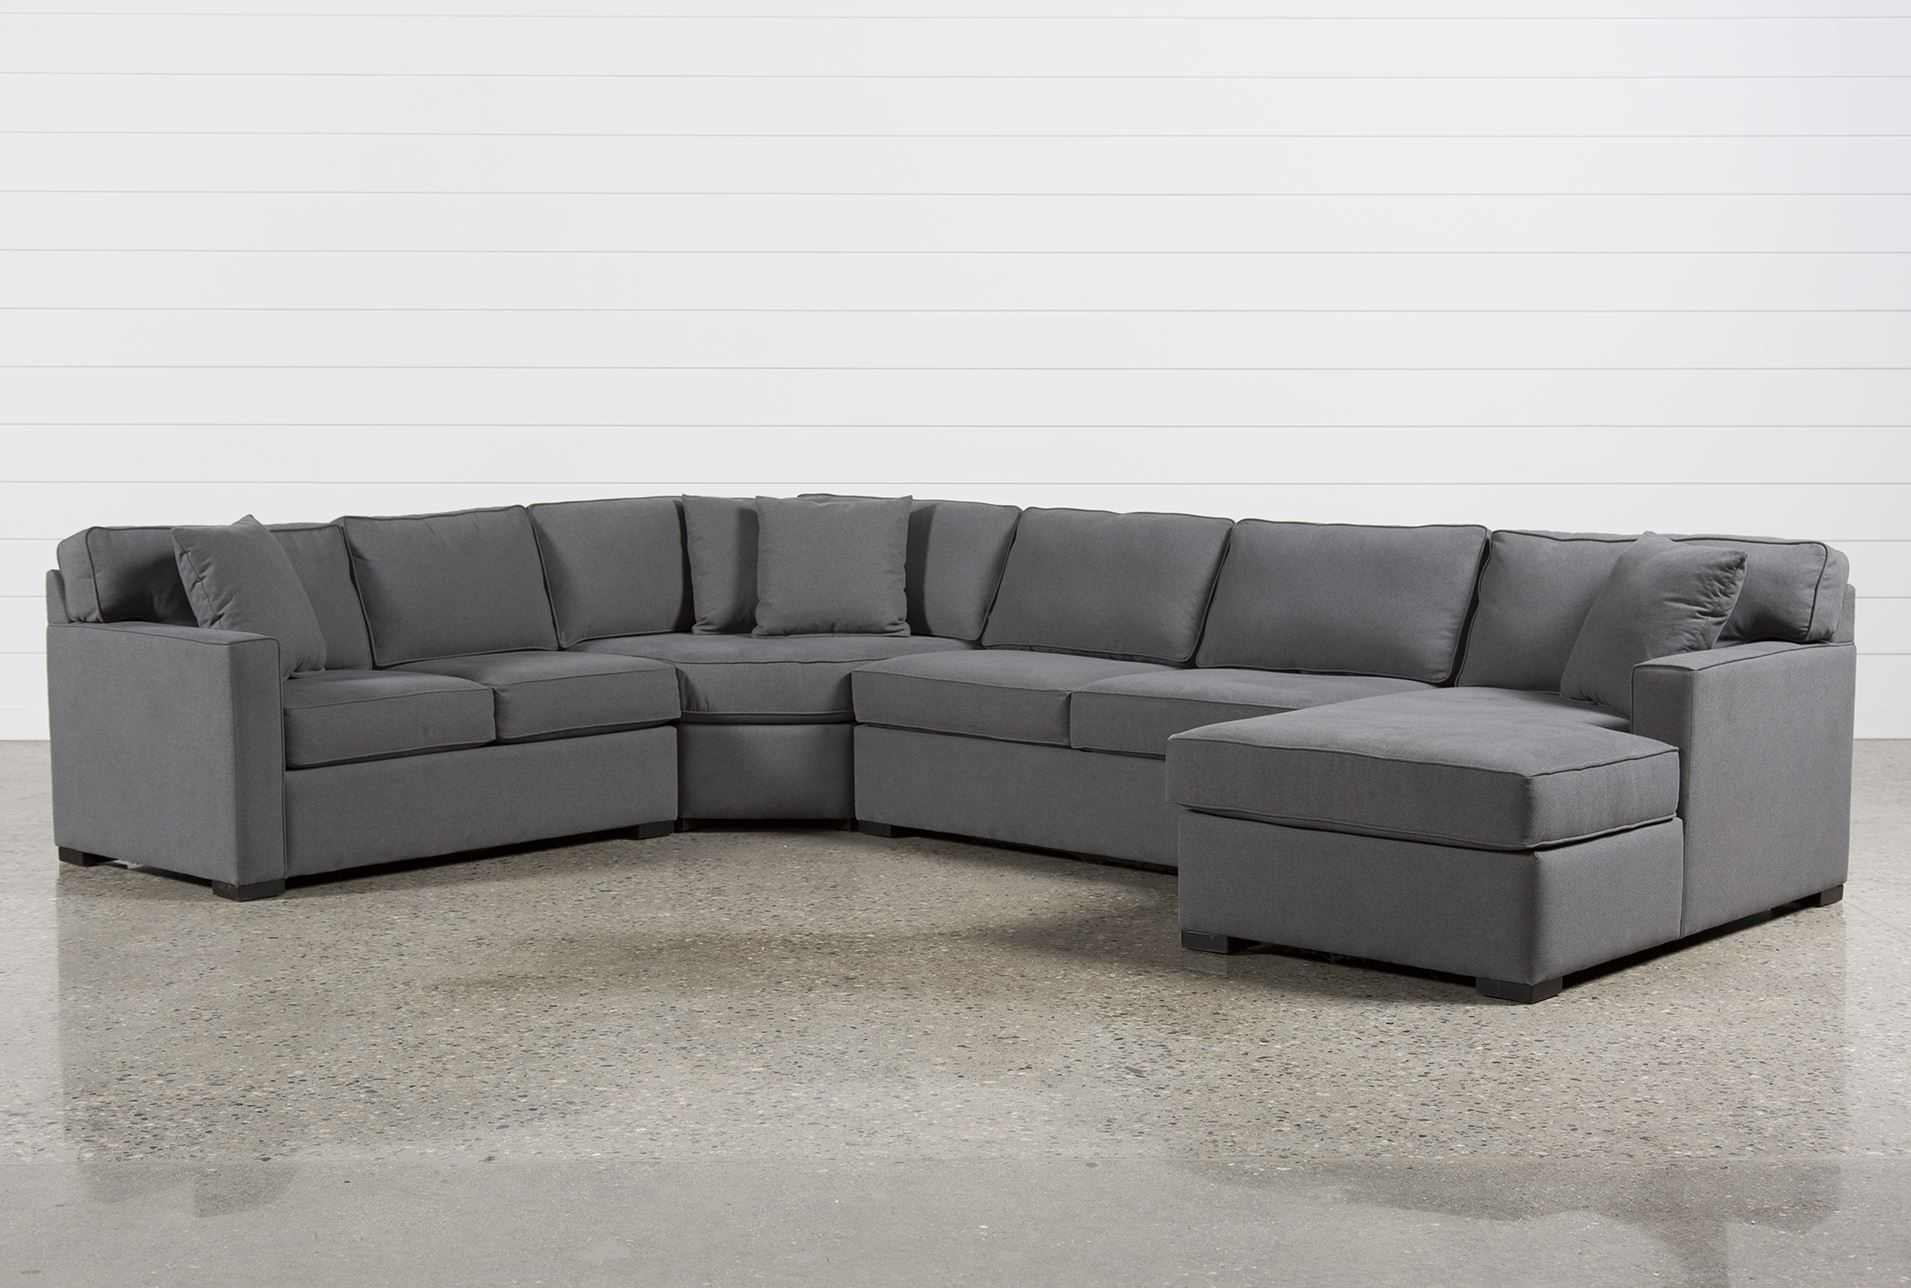 Alder Foam 4 Piece Sectional W Right Arm Facing Chaise Sectional Sofa With Recliner Modern Leather Sectional Sofas Grey Sectional Sofa